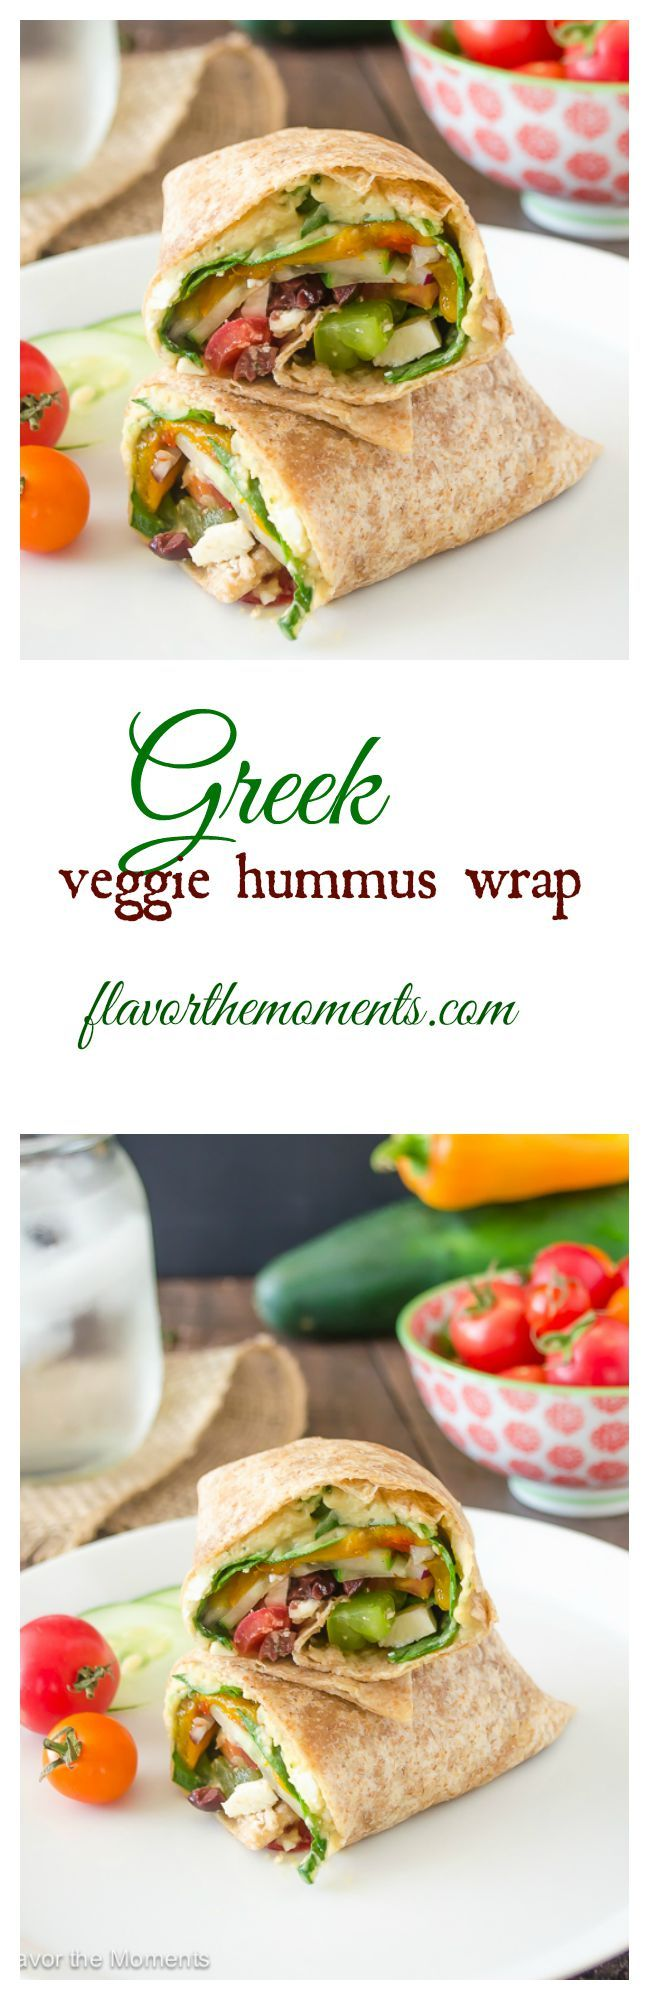 Greek Veggie Hummus Wrap | flavorthemoments.com